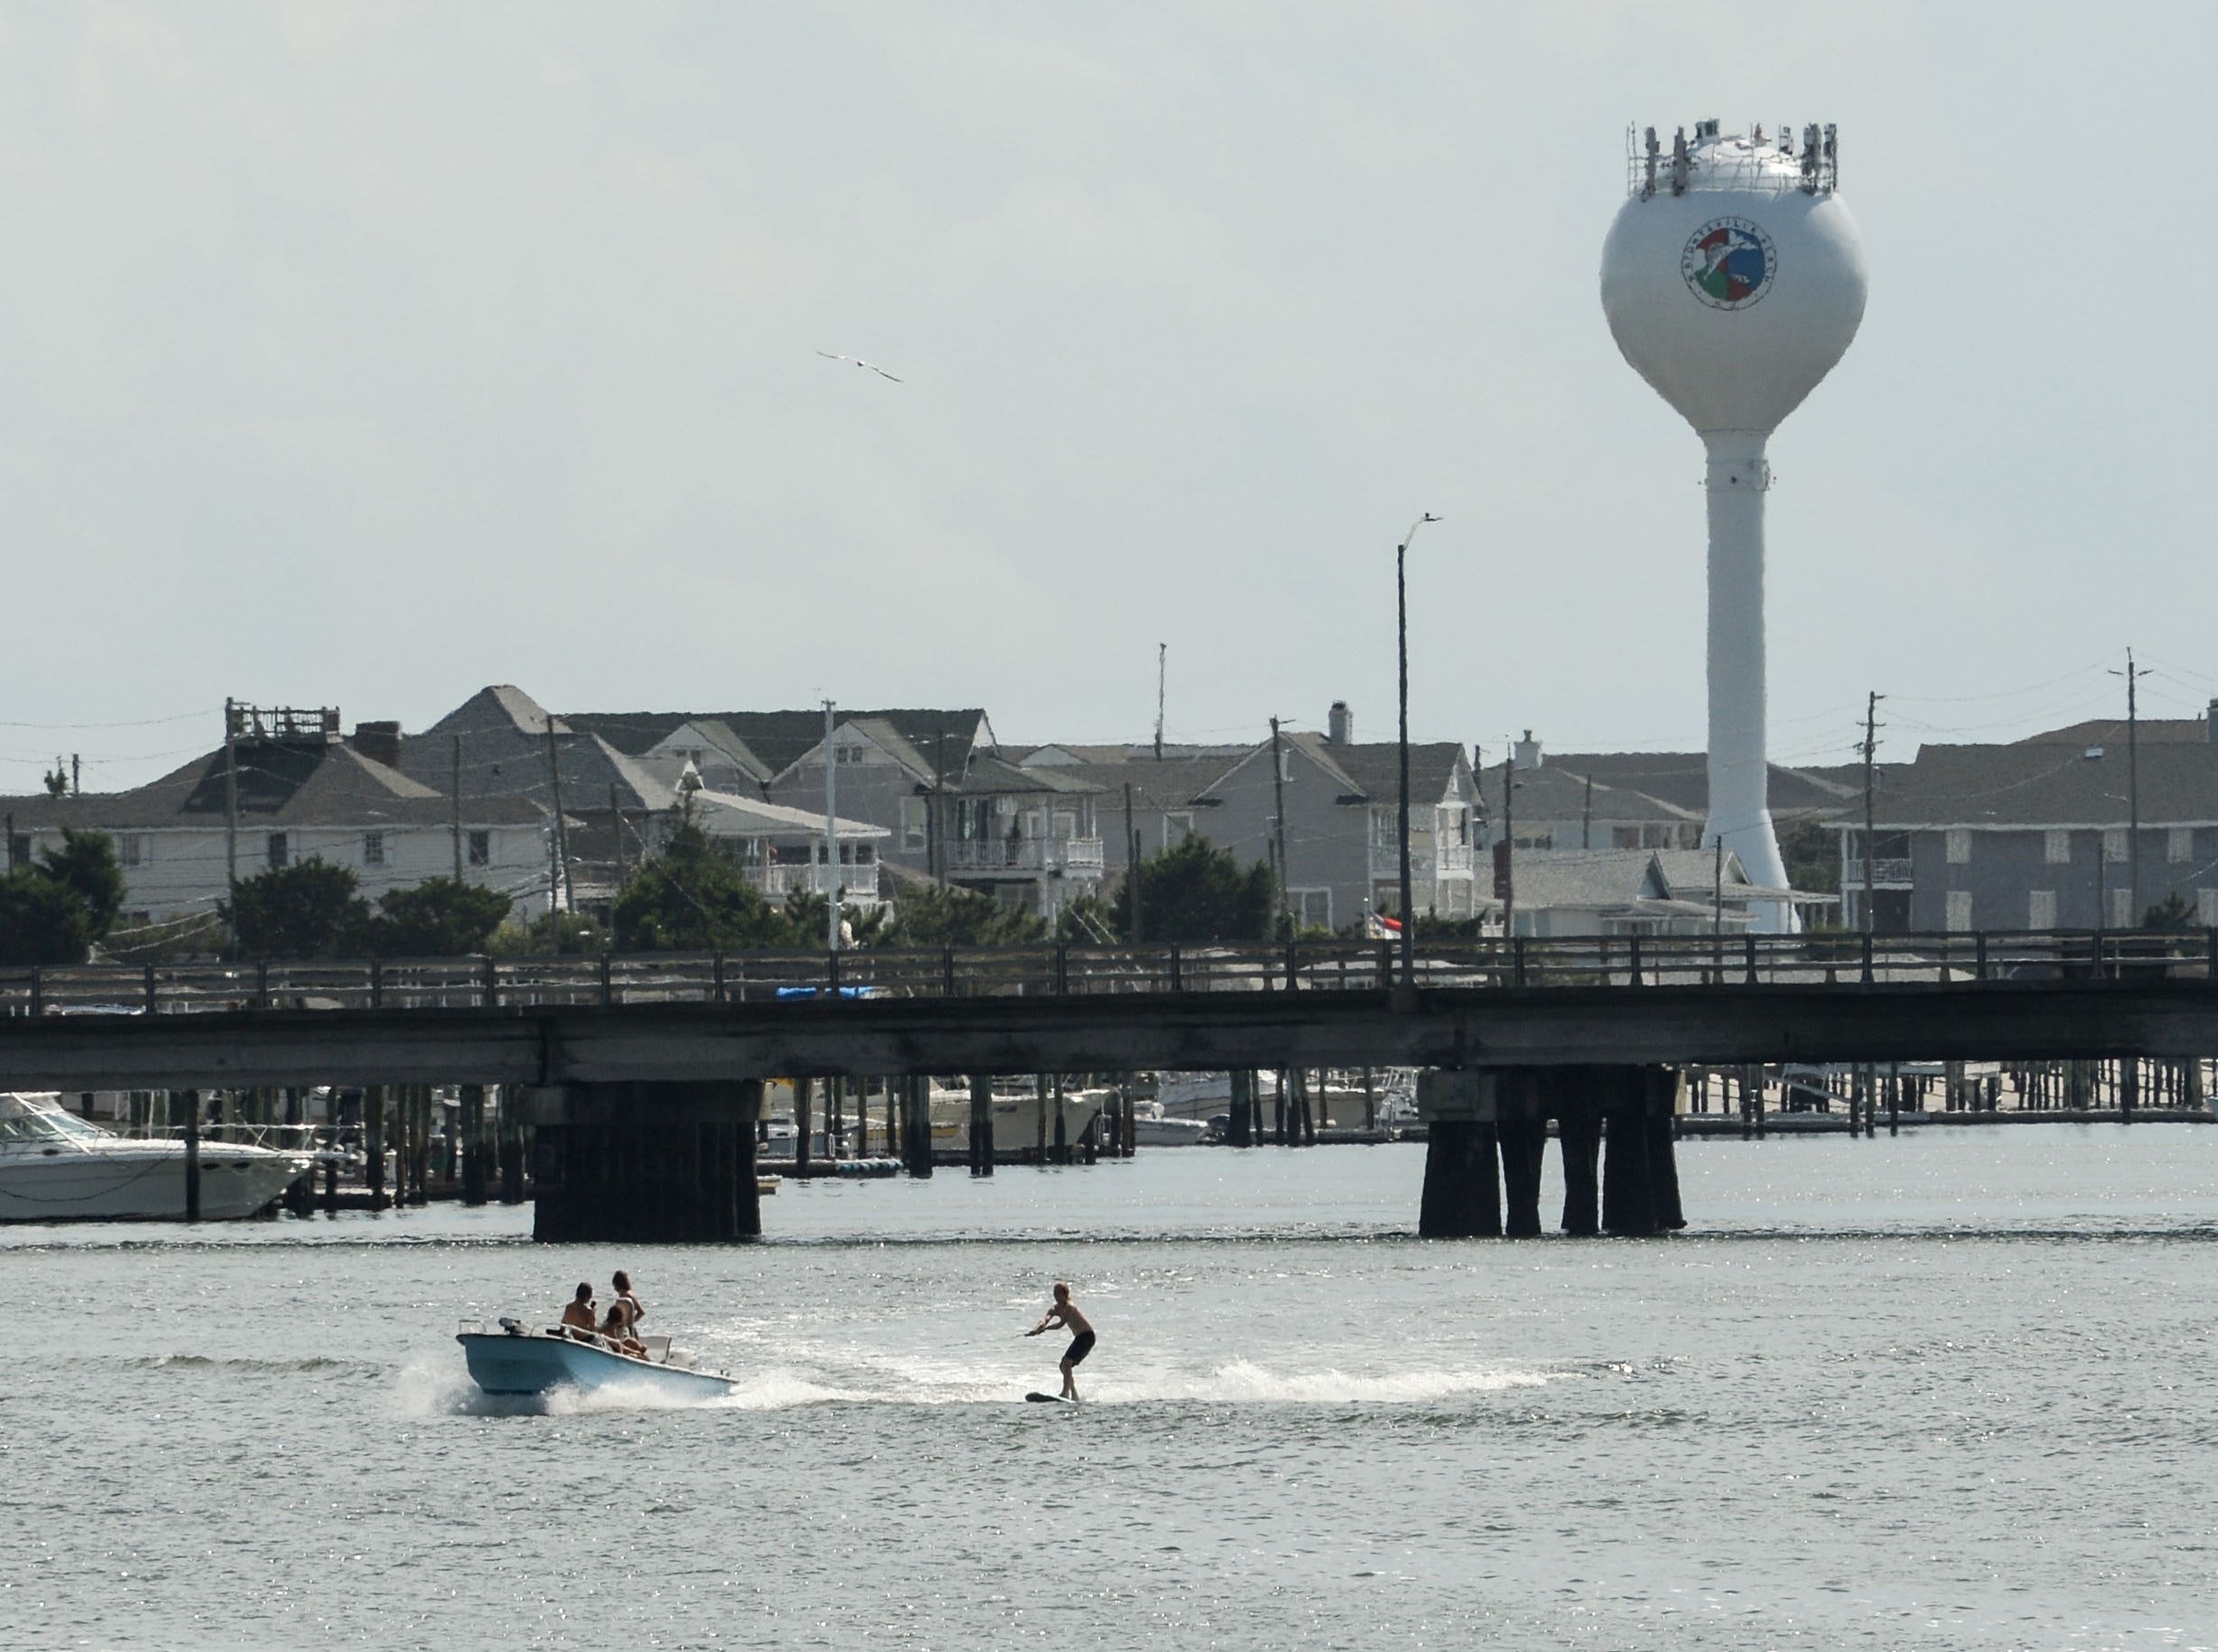 A boat pulls a water skier on the waterway near Wrightsville Beach in Wilmington, North Carolina on Tuesday, September 11, 2018. Hurricane Florence is expected to arrive in Wilmington, North Carolina late Thursday night through Friday morning. (Ken Ruinard / Greenville News / Gannett USA Today Network / 2018 )